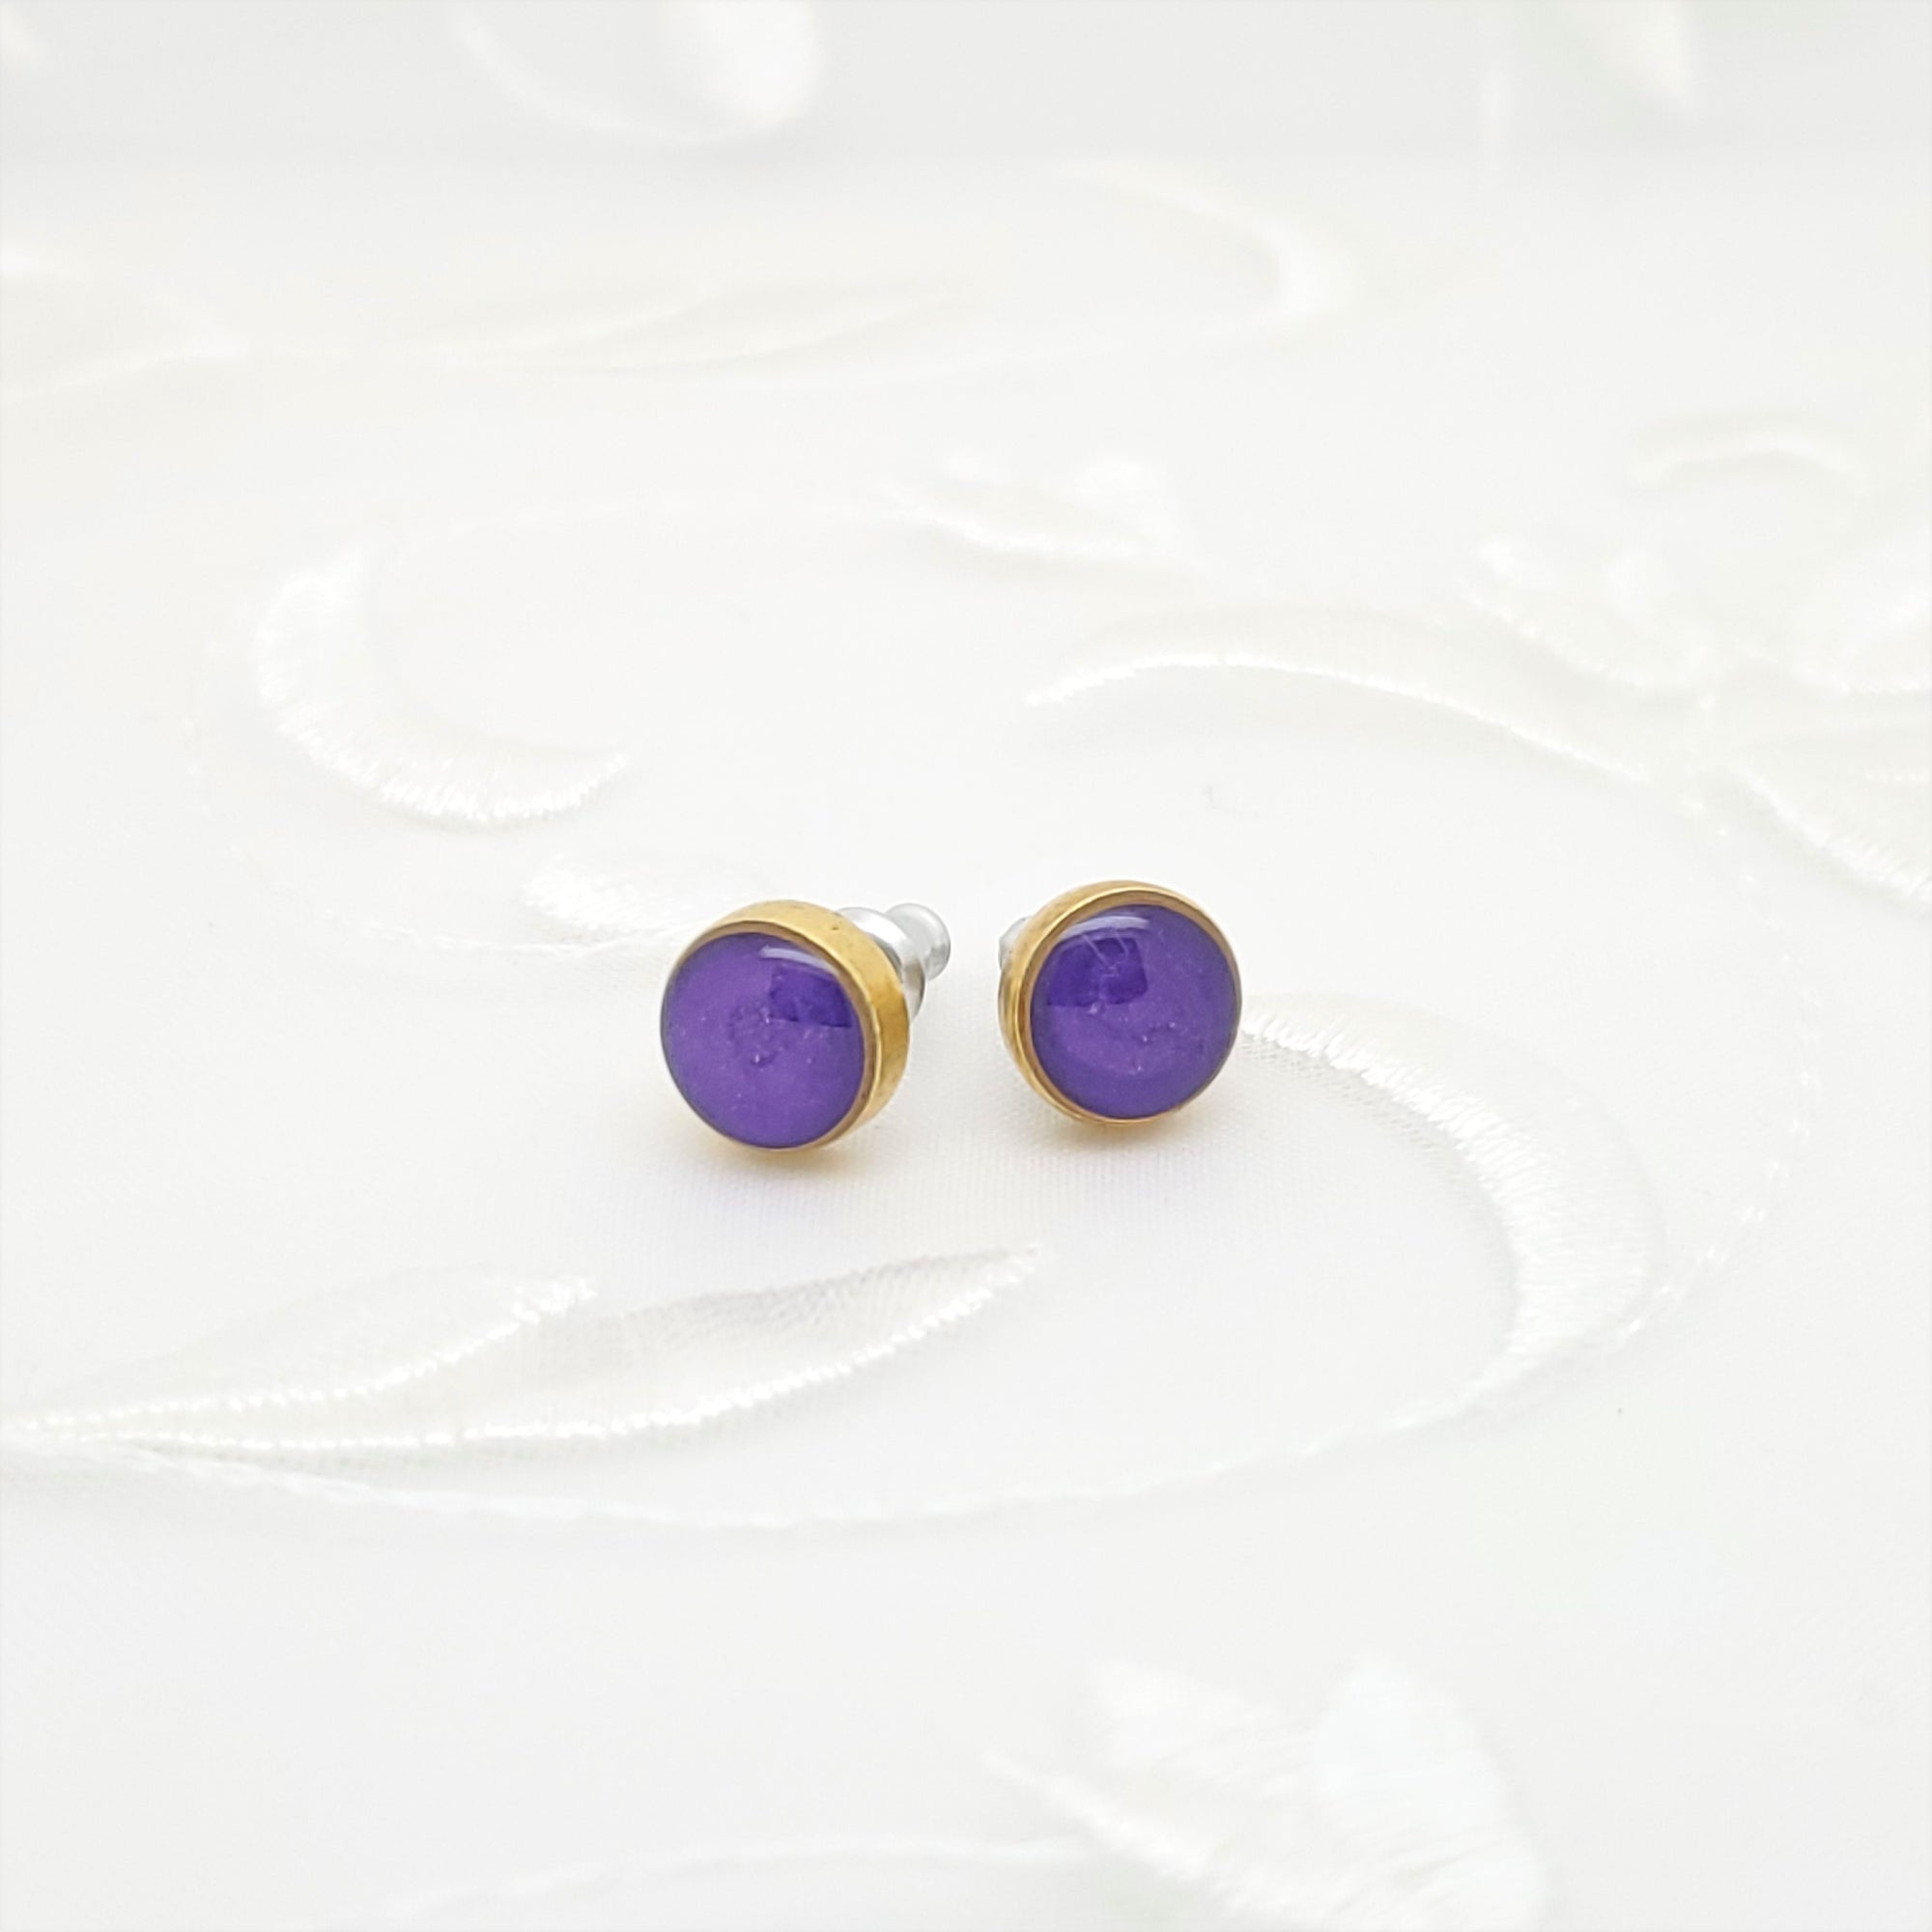 Antique Gold Round Stud Earrings with Pearlized Purple Resin